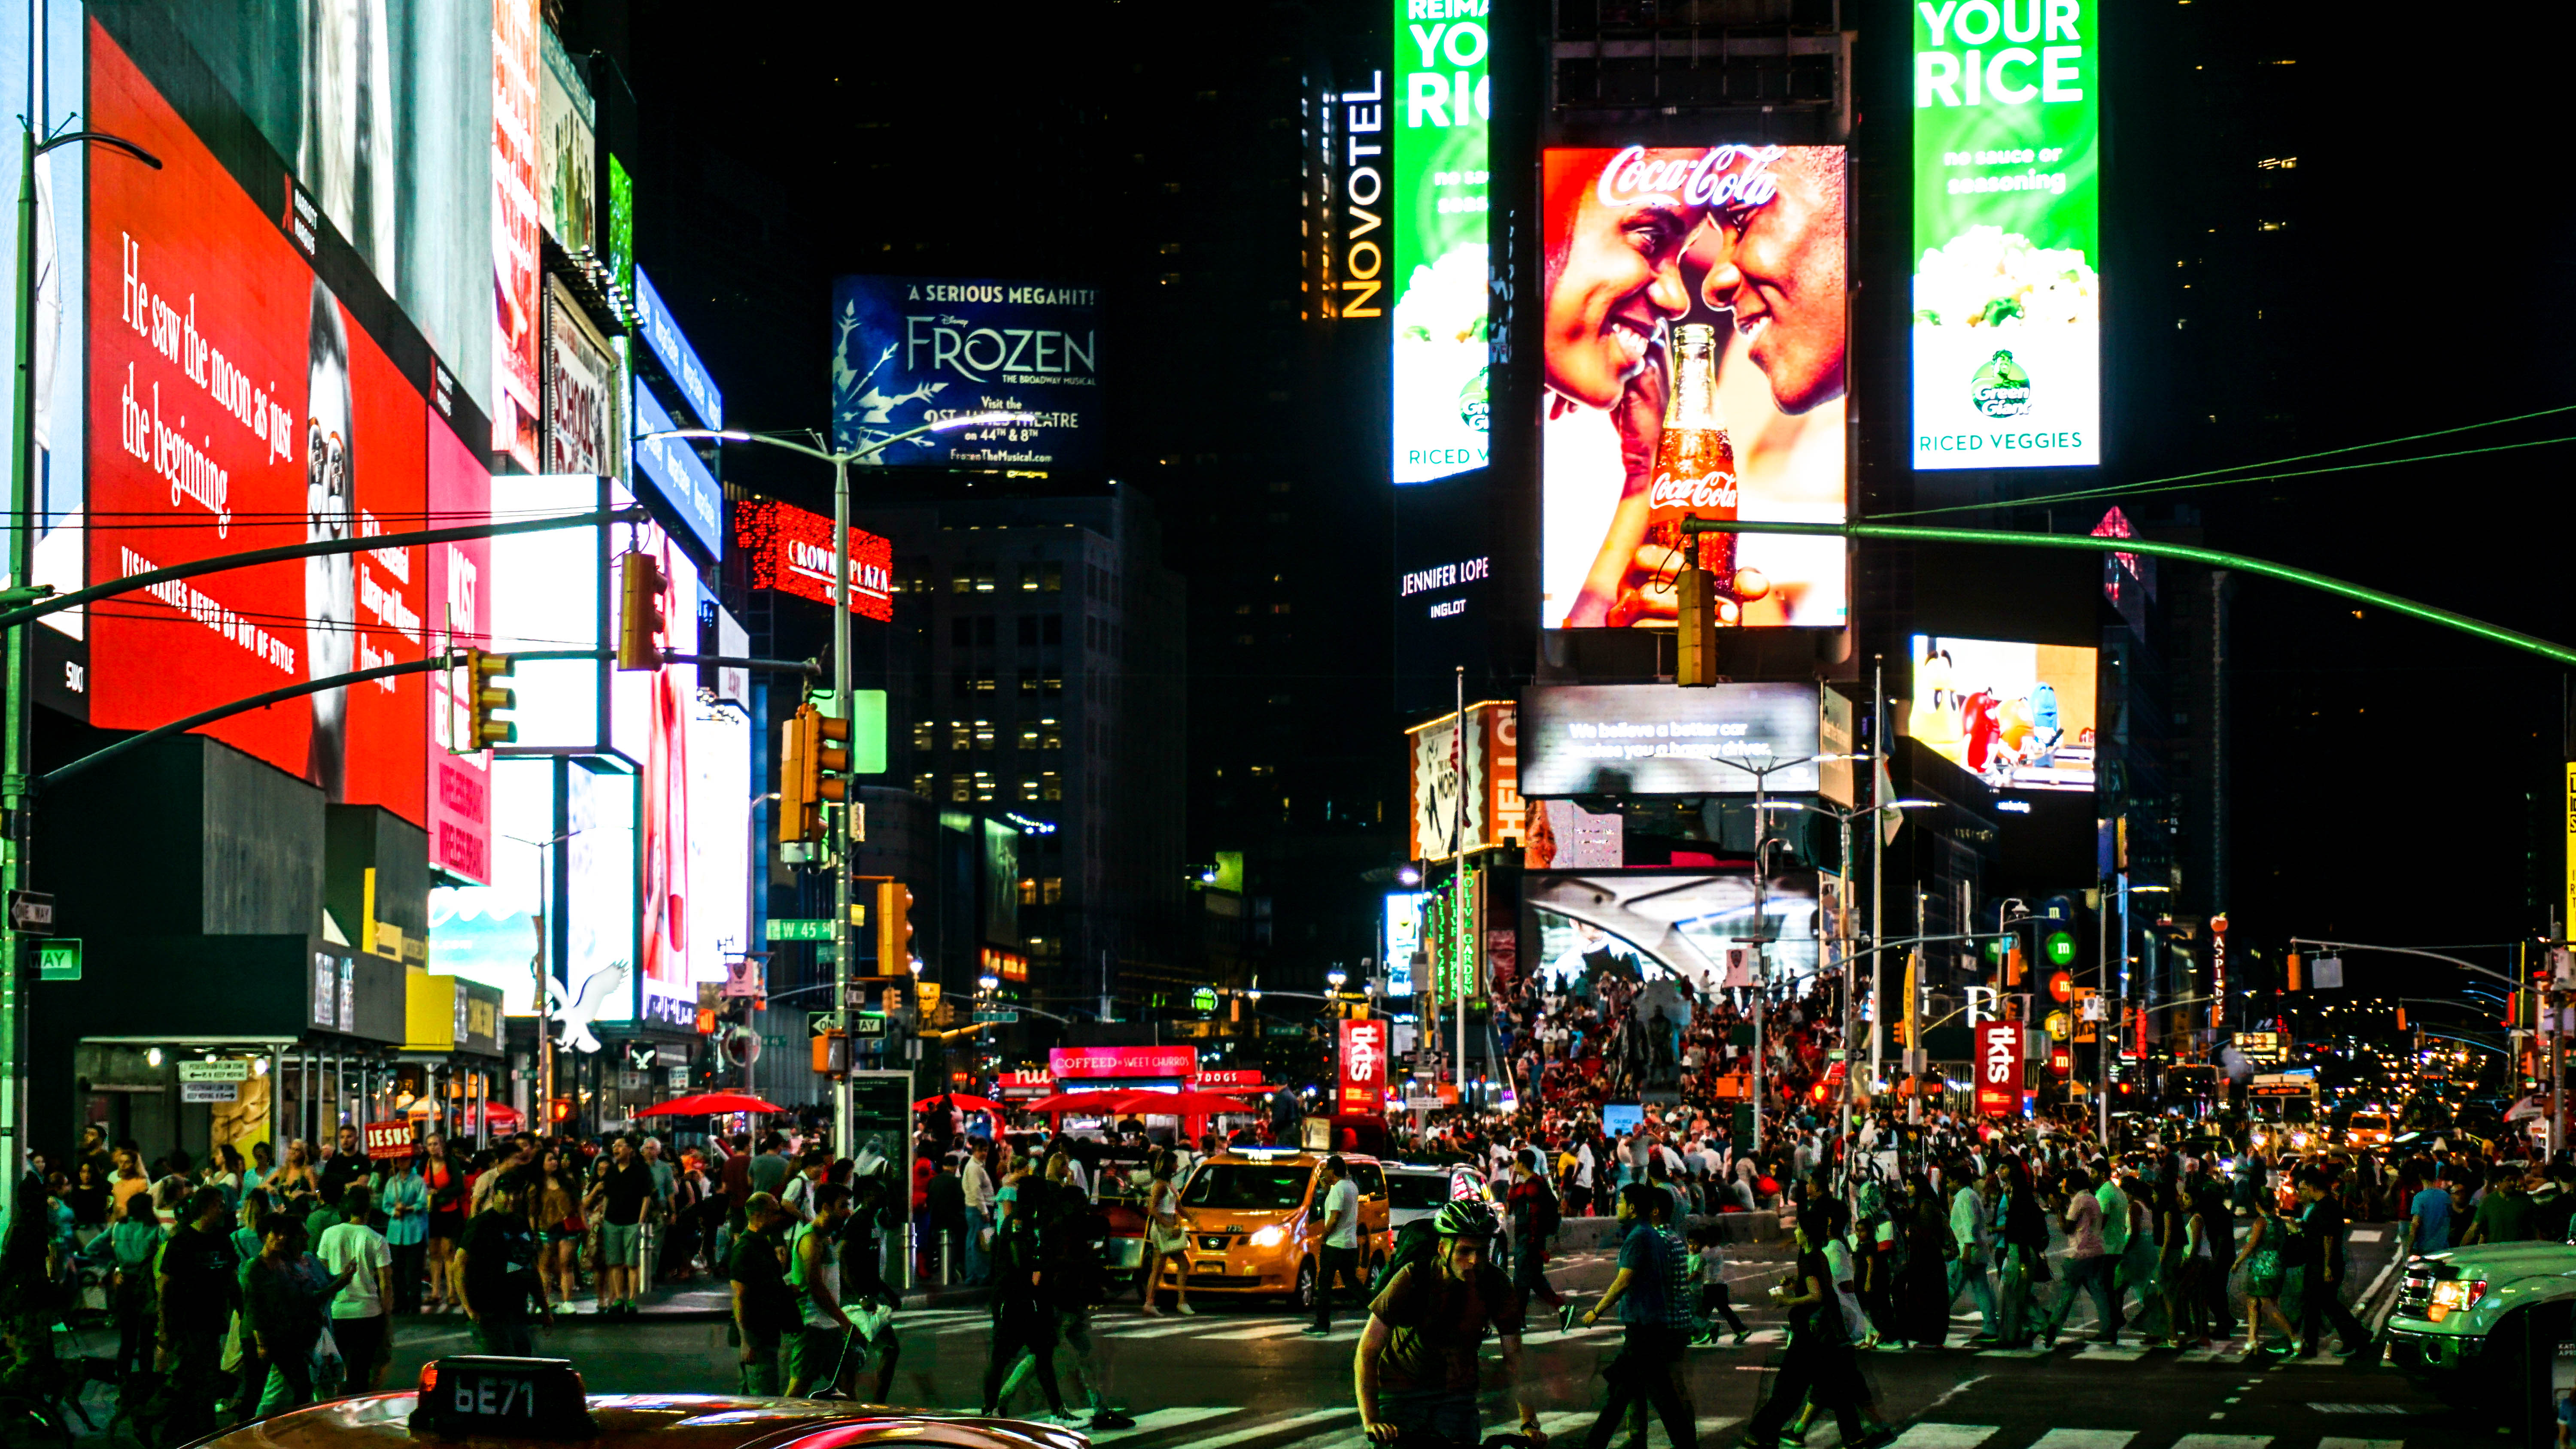 Image: Time Square at night.